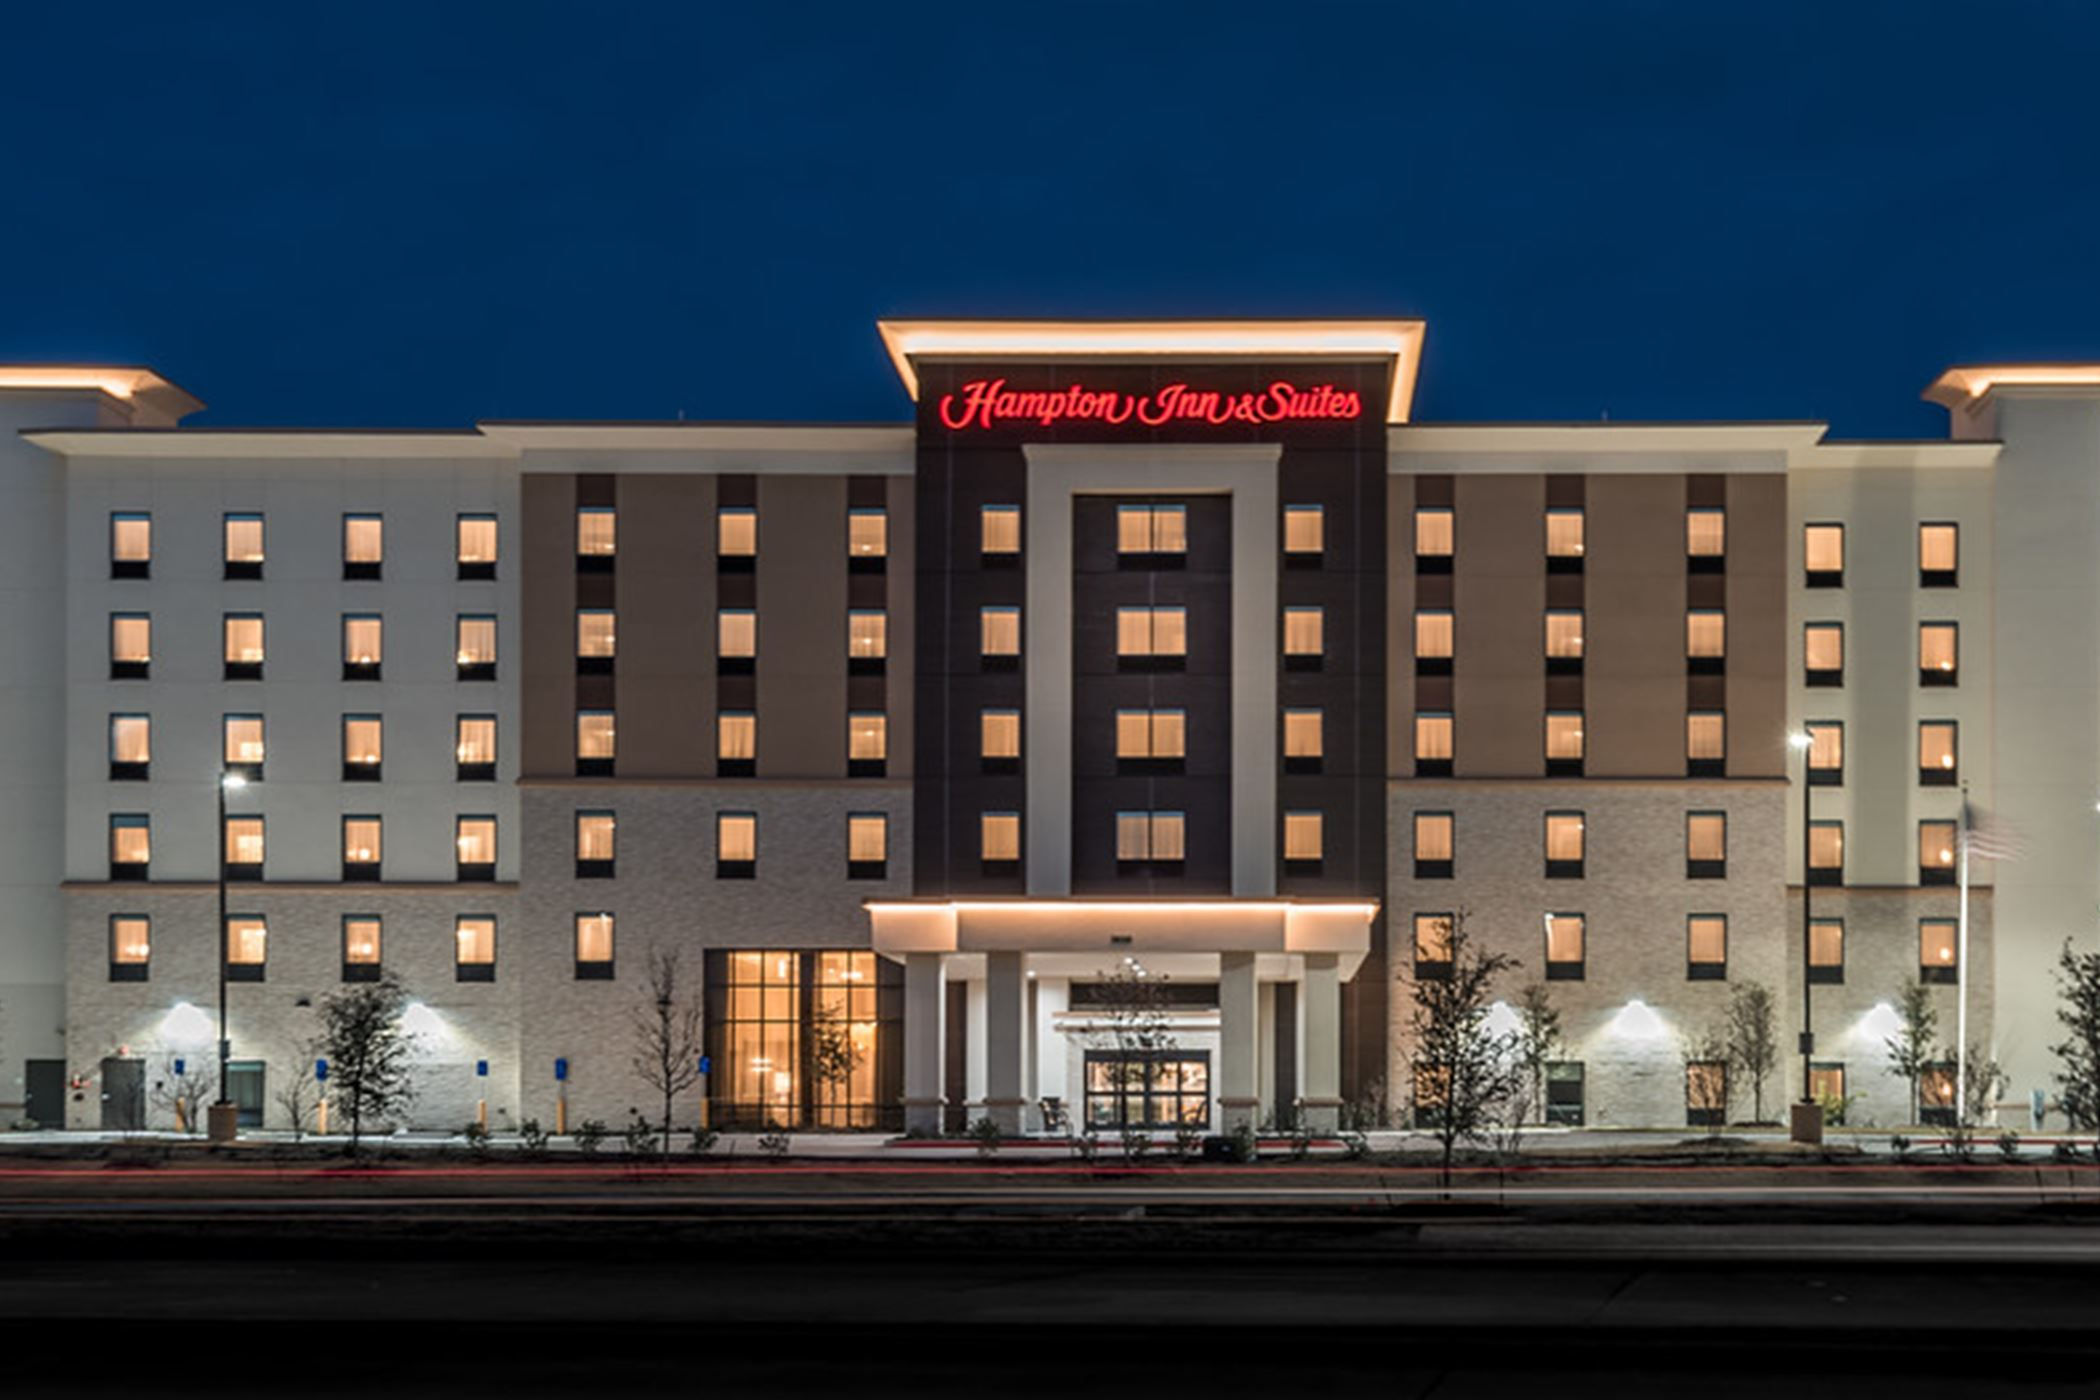 Hampton Inn and Suites - Exterior